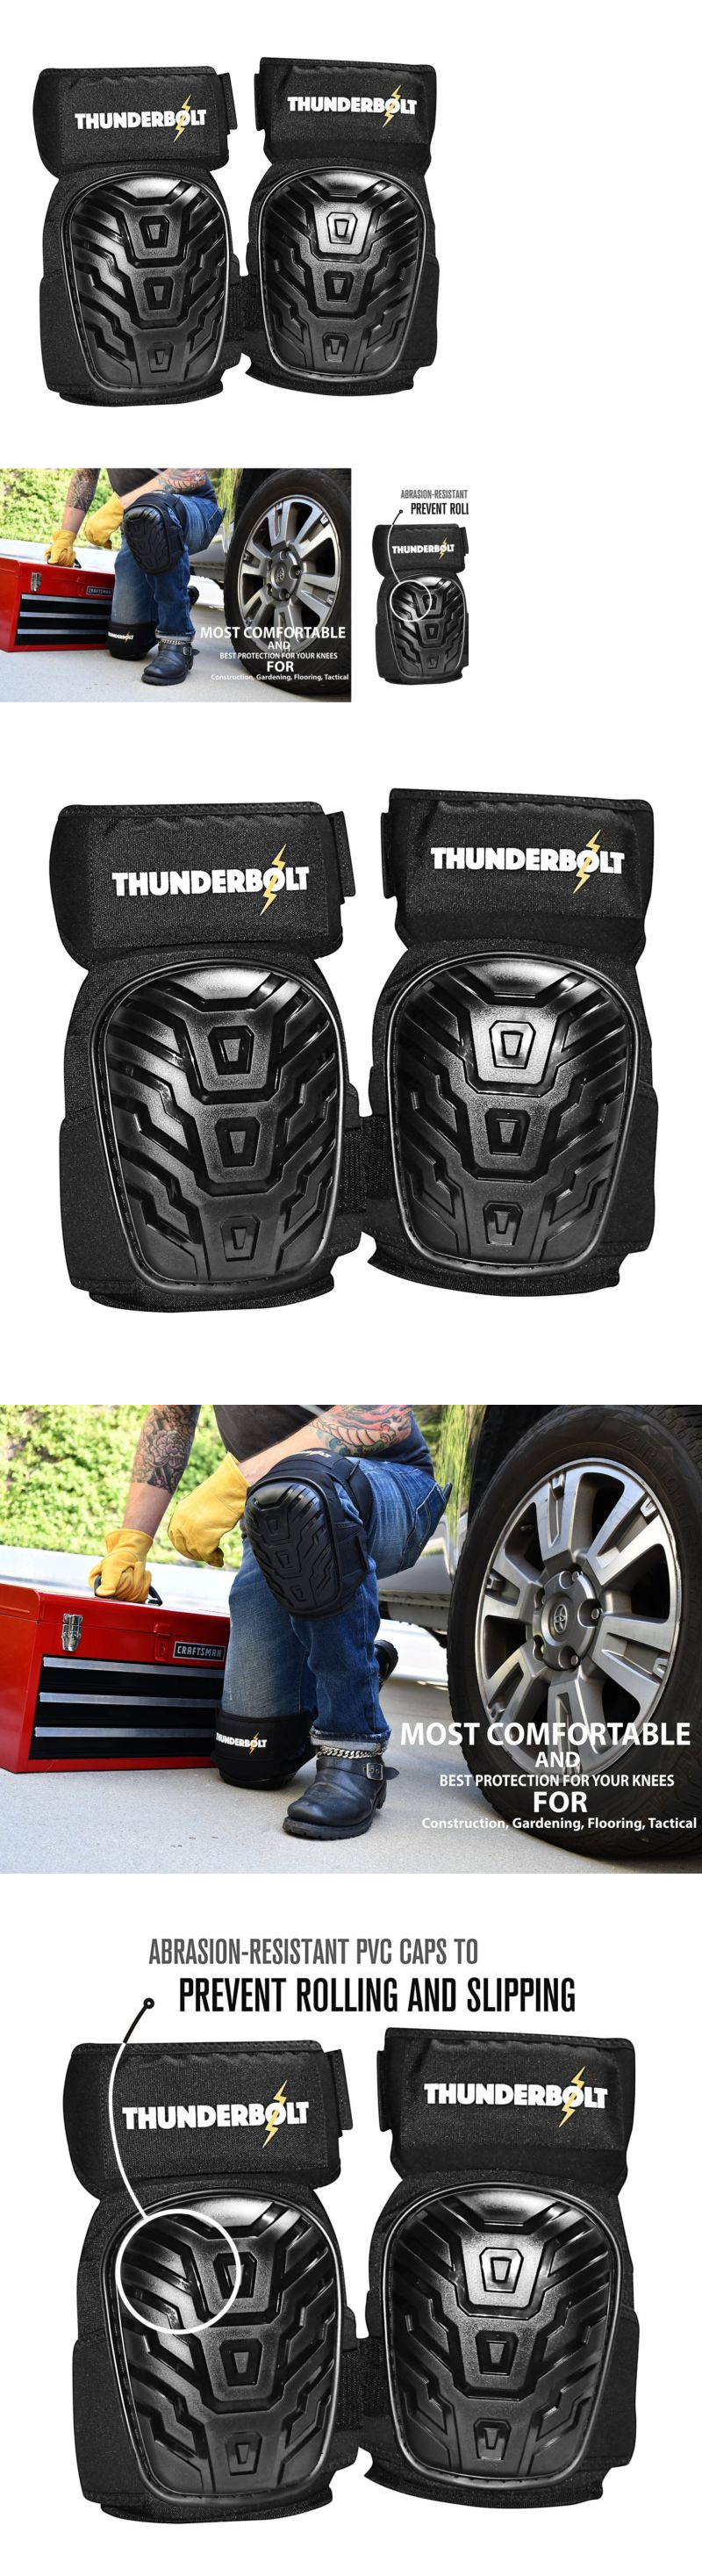 Gloves and pads professional hinged work knee pads gel